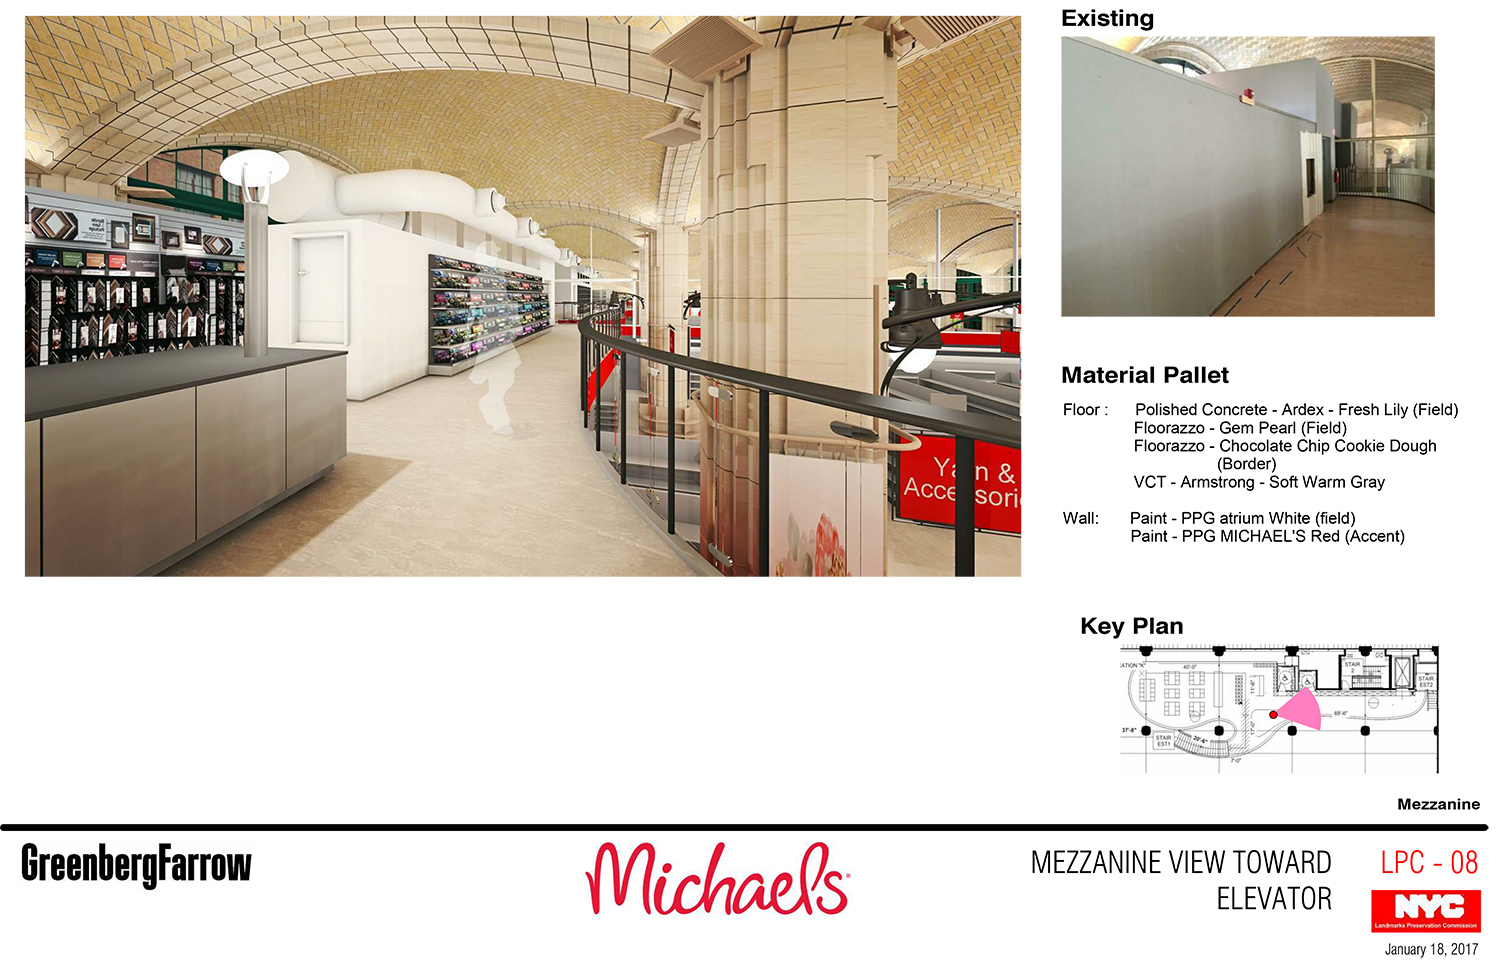 Renderings of the proposed Michaels frame shop at the mezzanine level